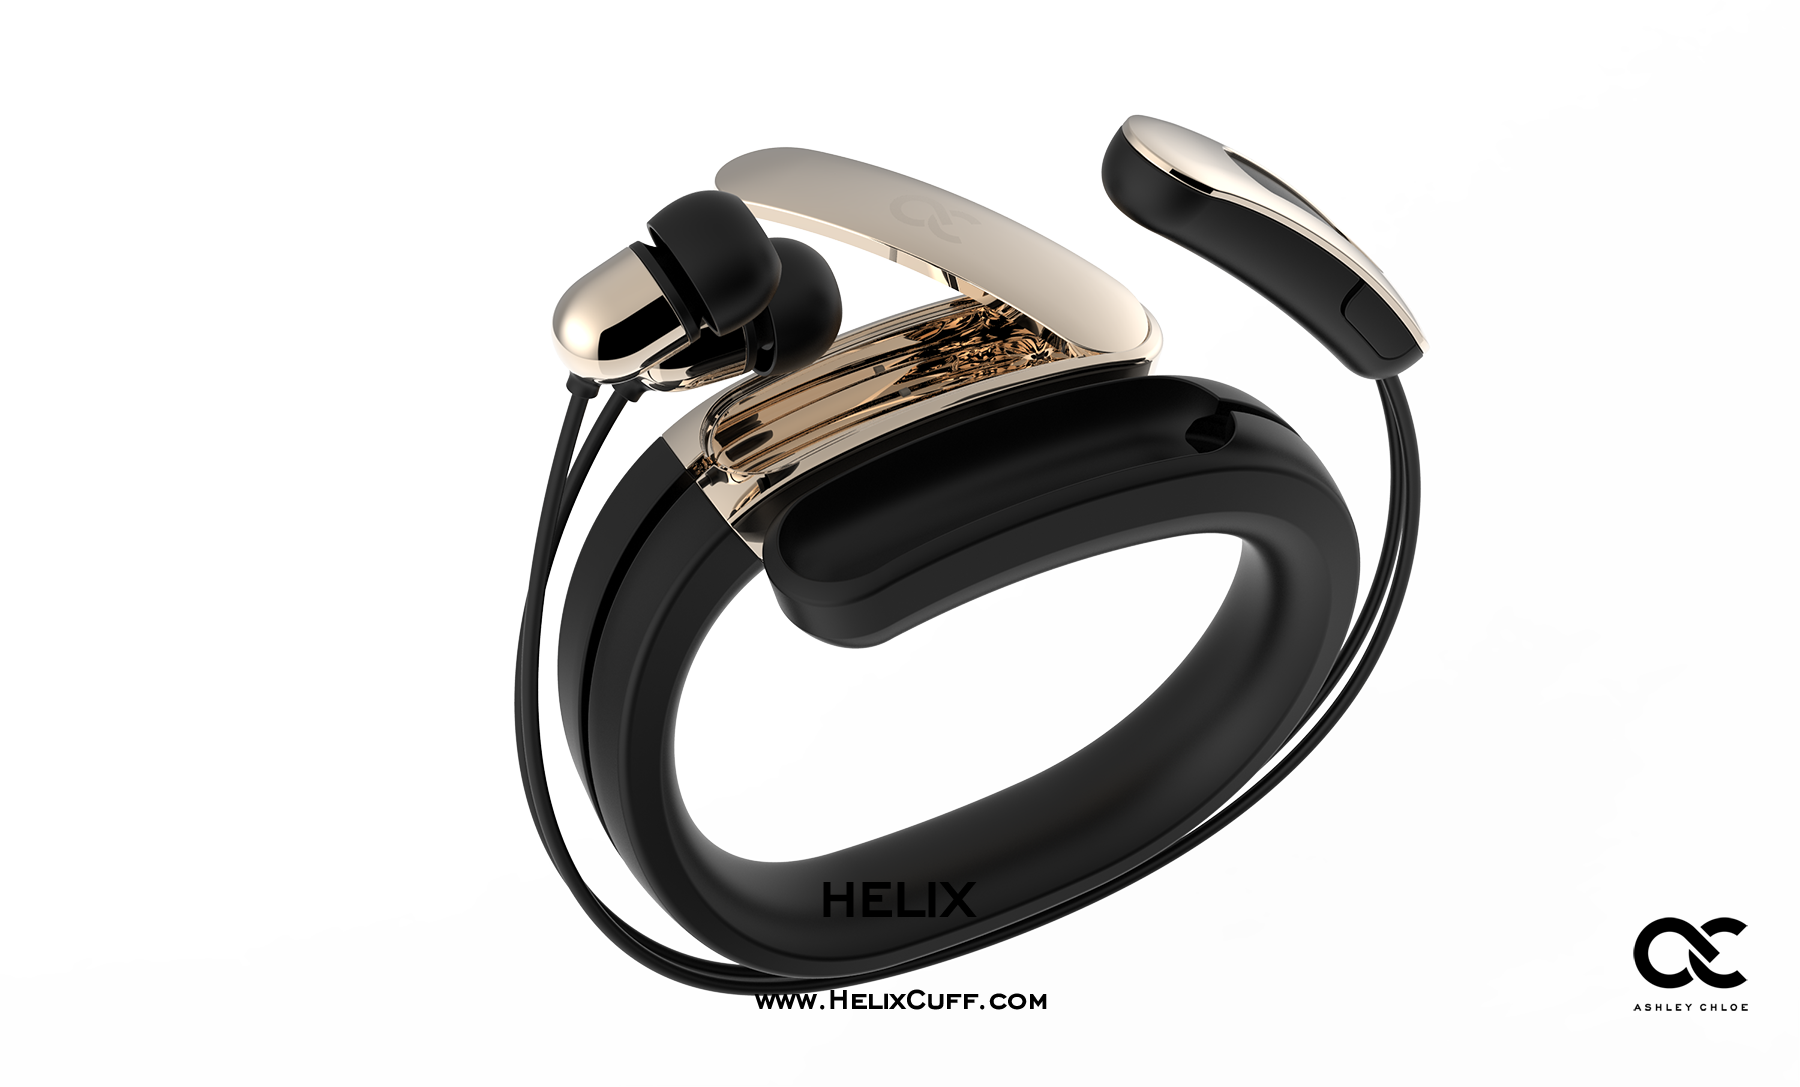 Helix_Cuff_33.png